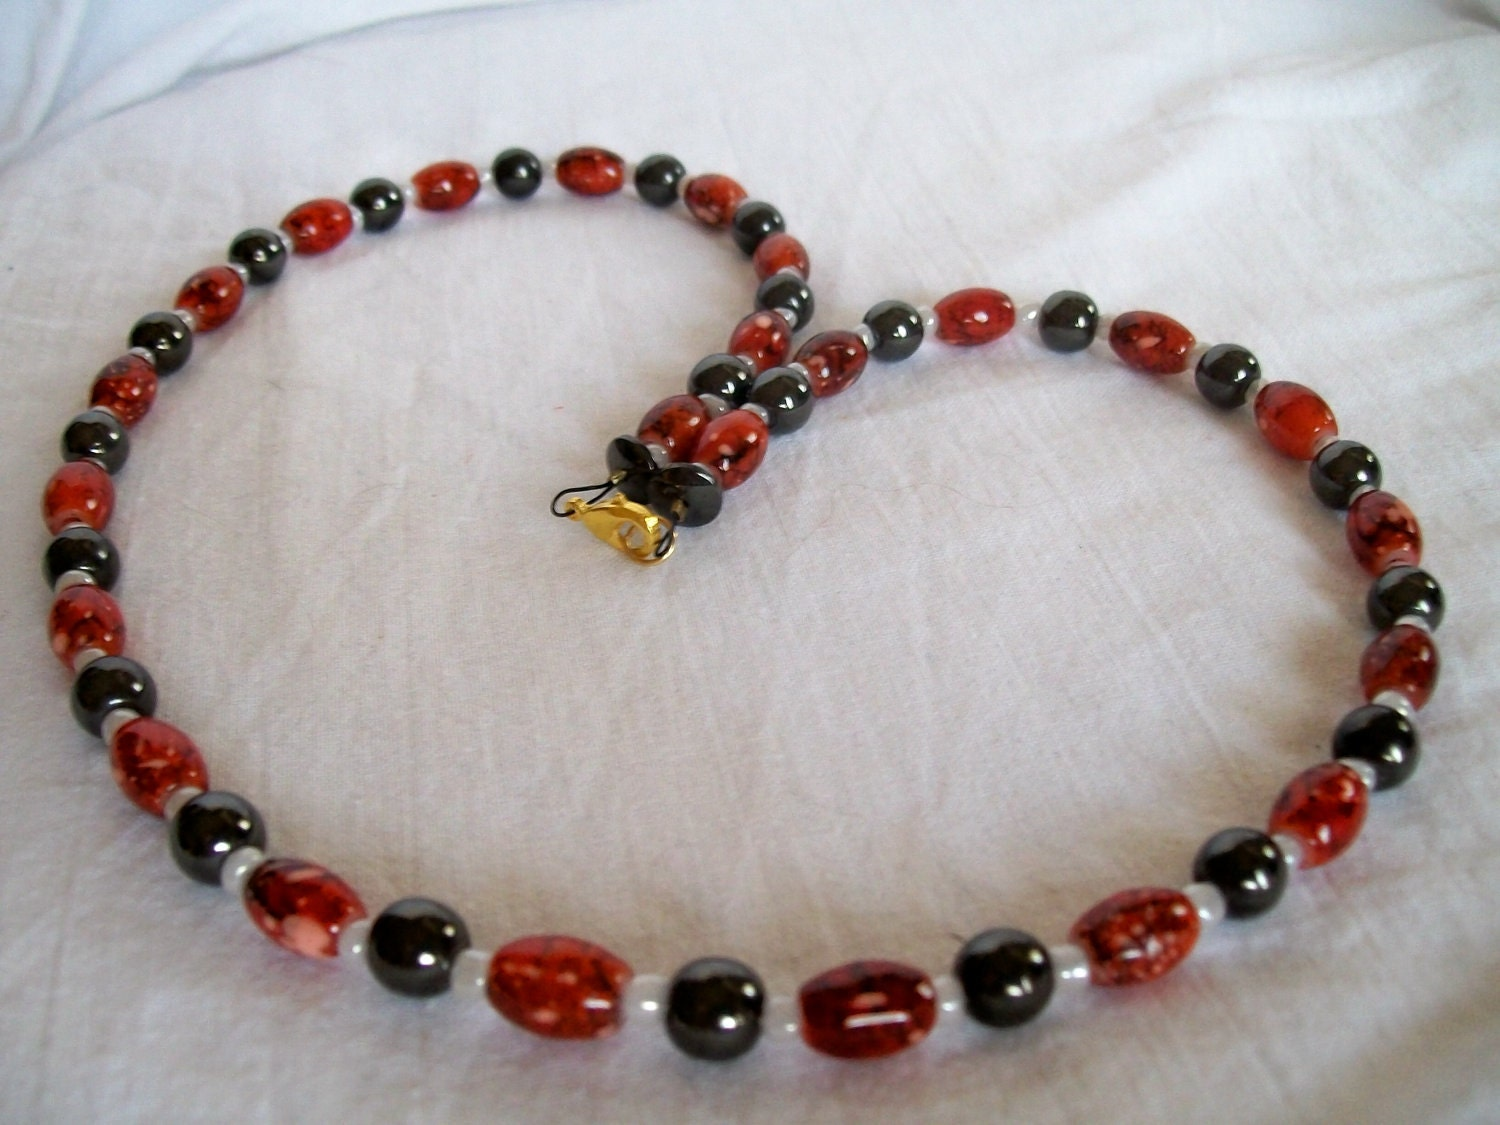 MAGNET NECKLACE of Red Acrylic Beads and Dark Grey Magnet Beads - JypsyJewels